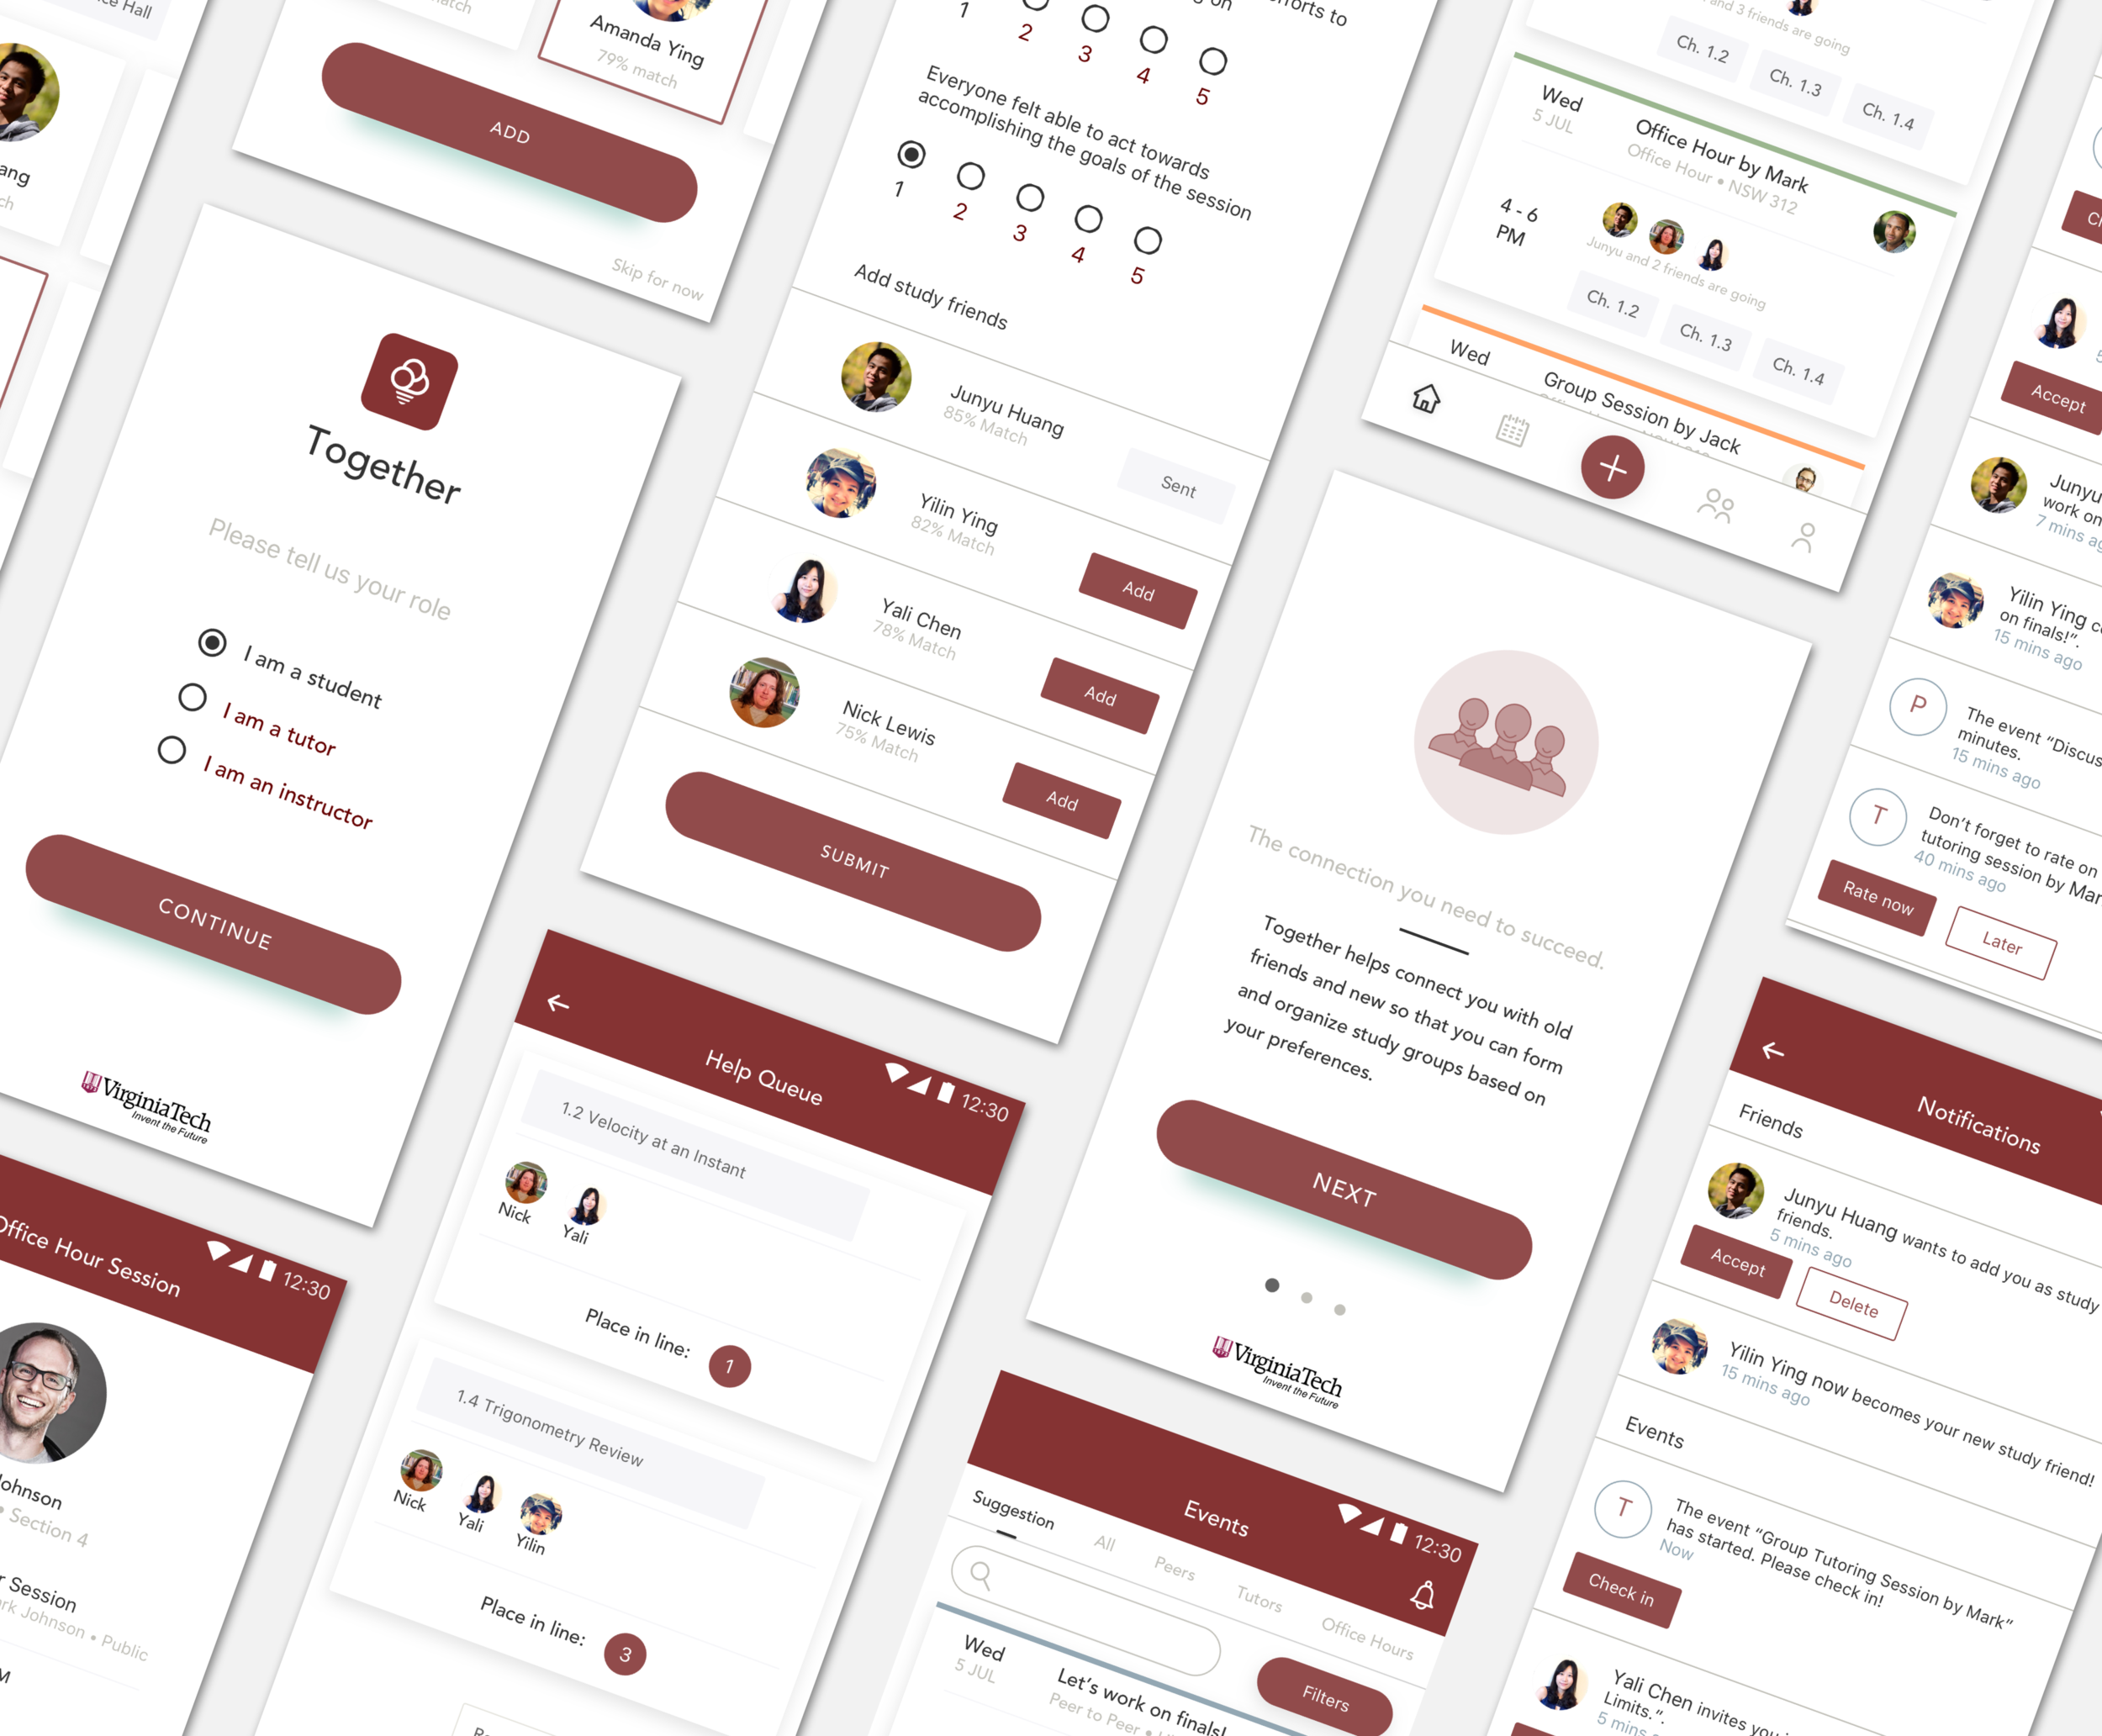 Introducing Together - A mobile app that will help Virginia Tech improve peer learning and tutoring experiences, facilitate human connections, and build a learning community. Together connects students with peers and provides valuable information to tutors, instructors, and administrators.